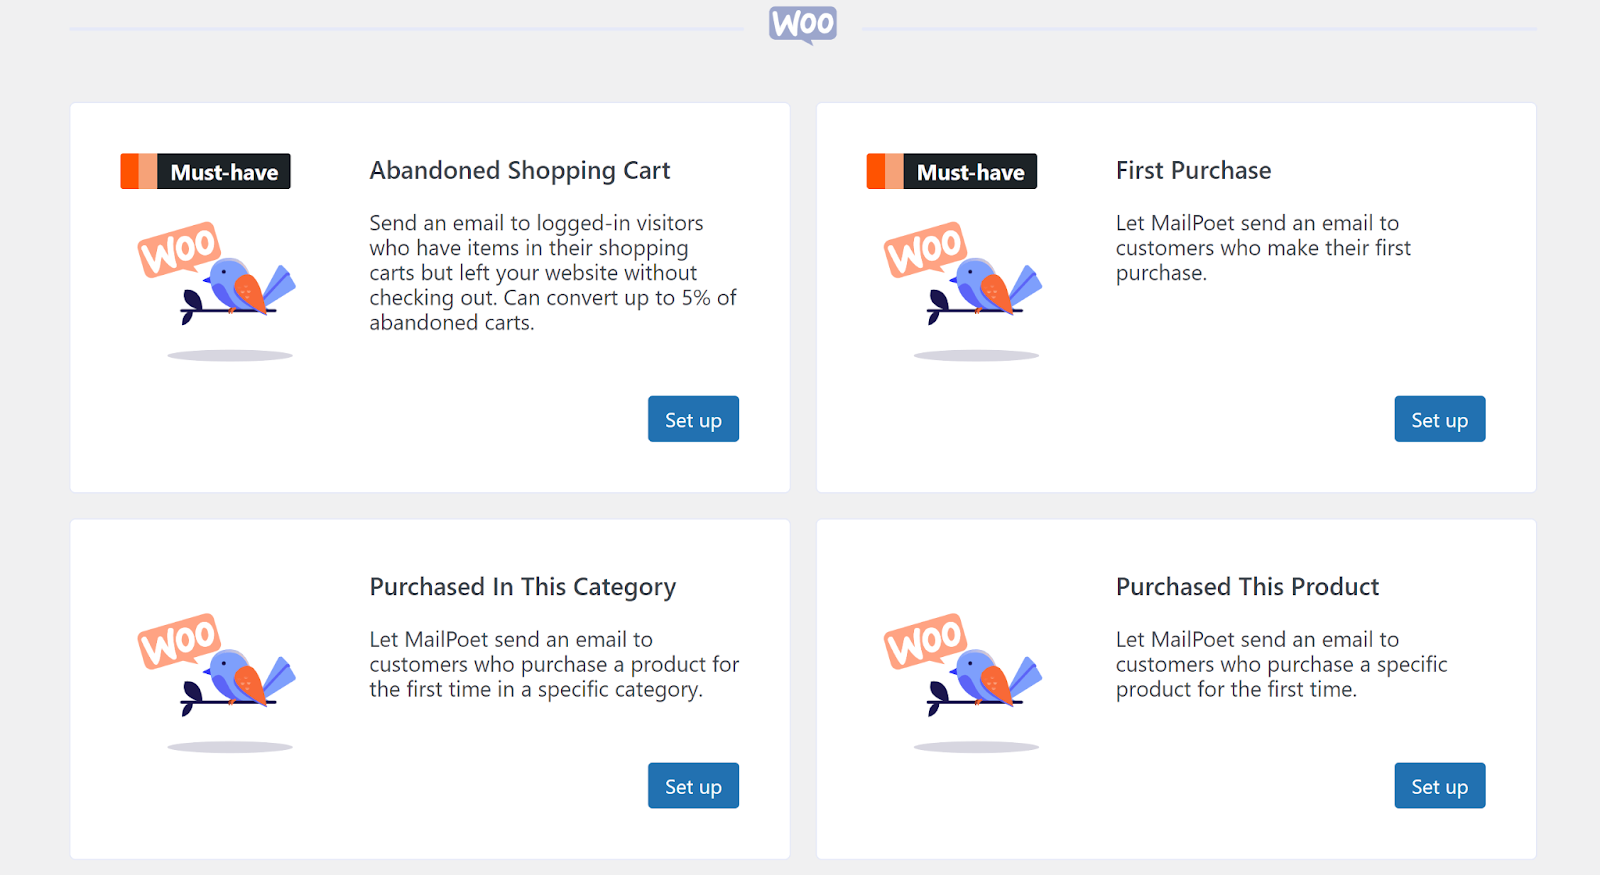 WooCommerce email options in MailPoet